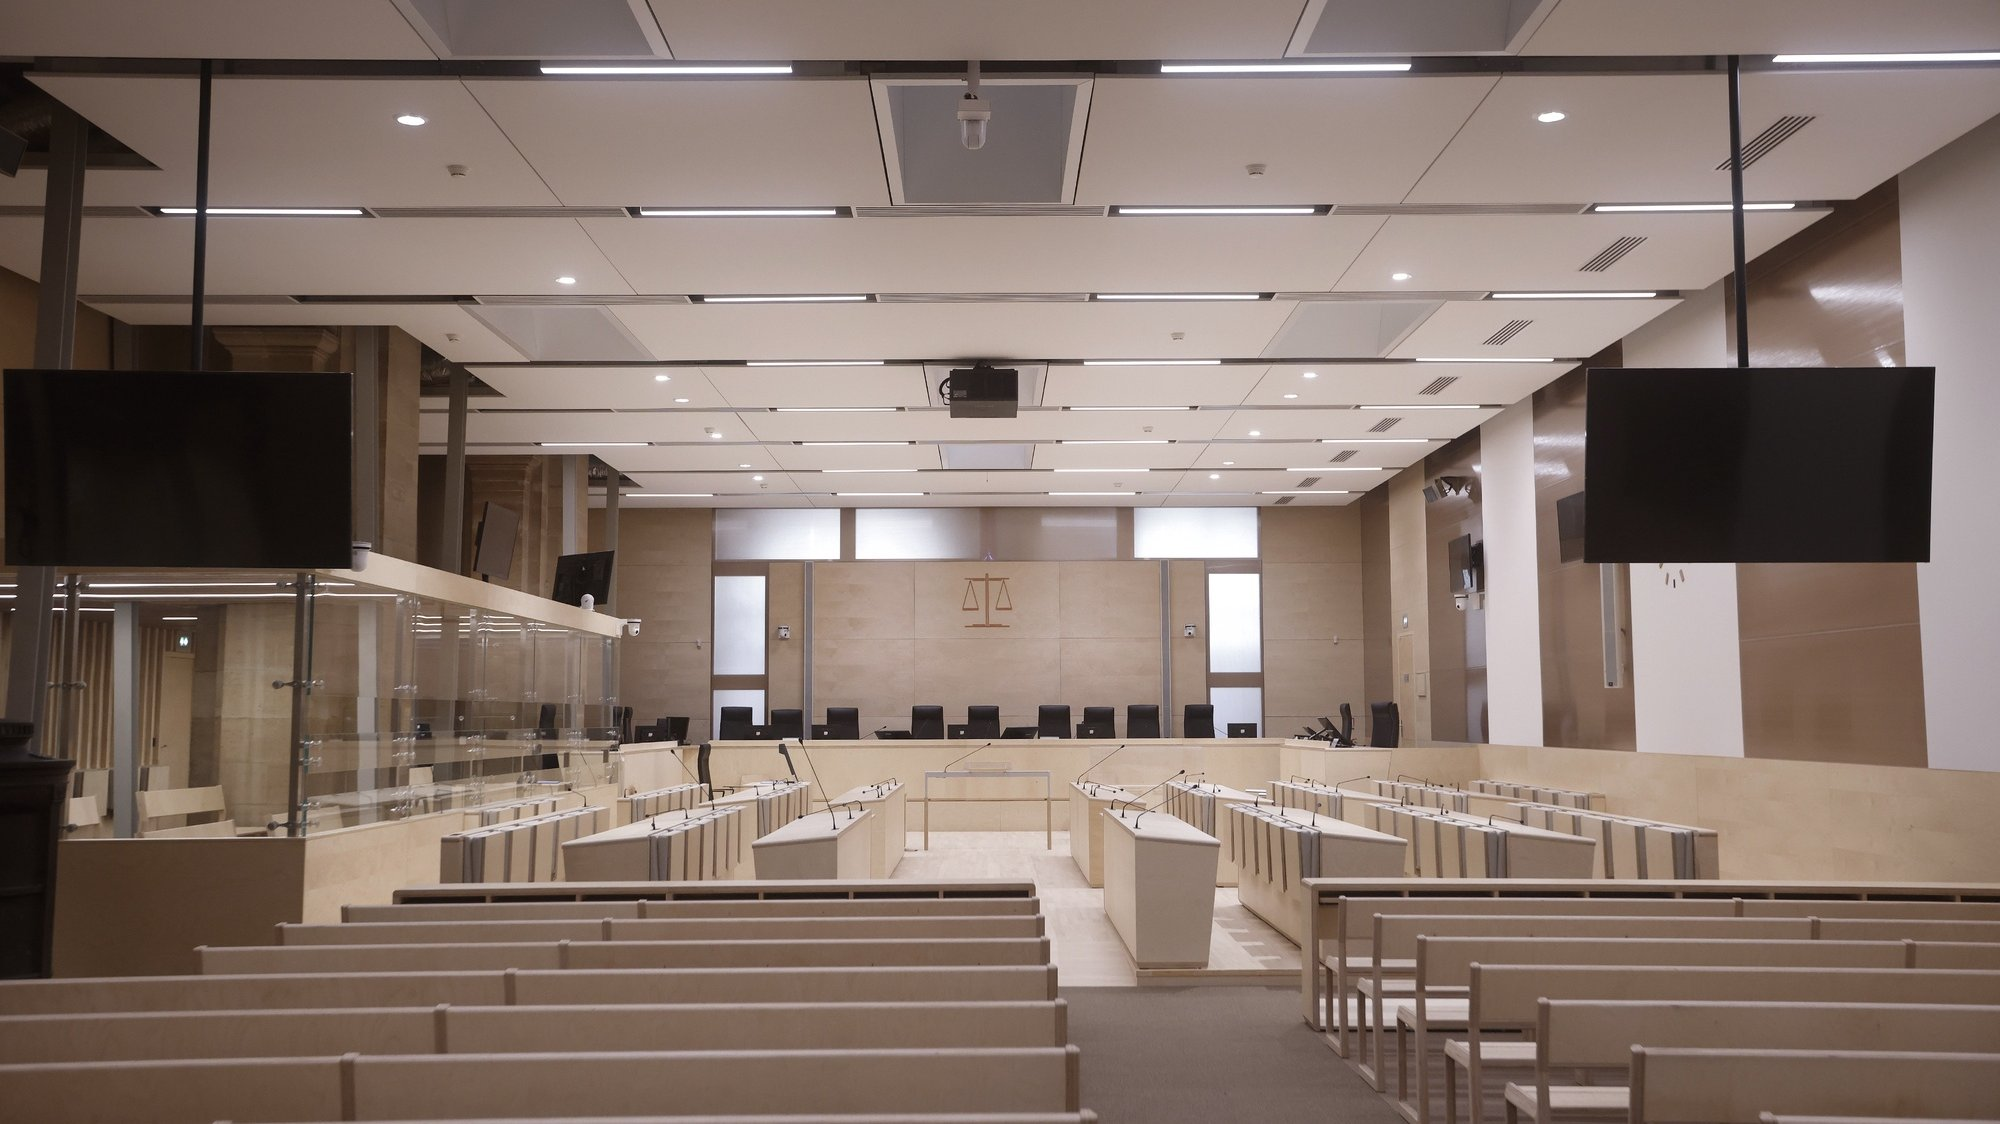 epa09442661 An interior view of the temporary courtroom prepared for trial over 2015 terrorist attacks at the courthouse in Paris, France, 02 September 2021. The trial over the 13 November 2015 terrorist attacks is due to start on 08 September 2021 and will last nine months. The attacks killed 130 people with hundreds injured which targeted the Bataclan concert hall, the Stade de France national sports stadium, and several restaurants and bars.  EPA/YOAN VALAT